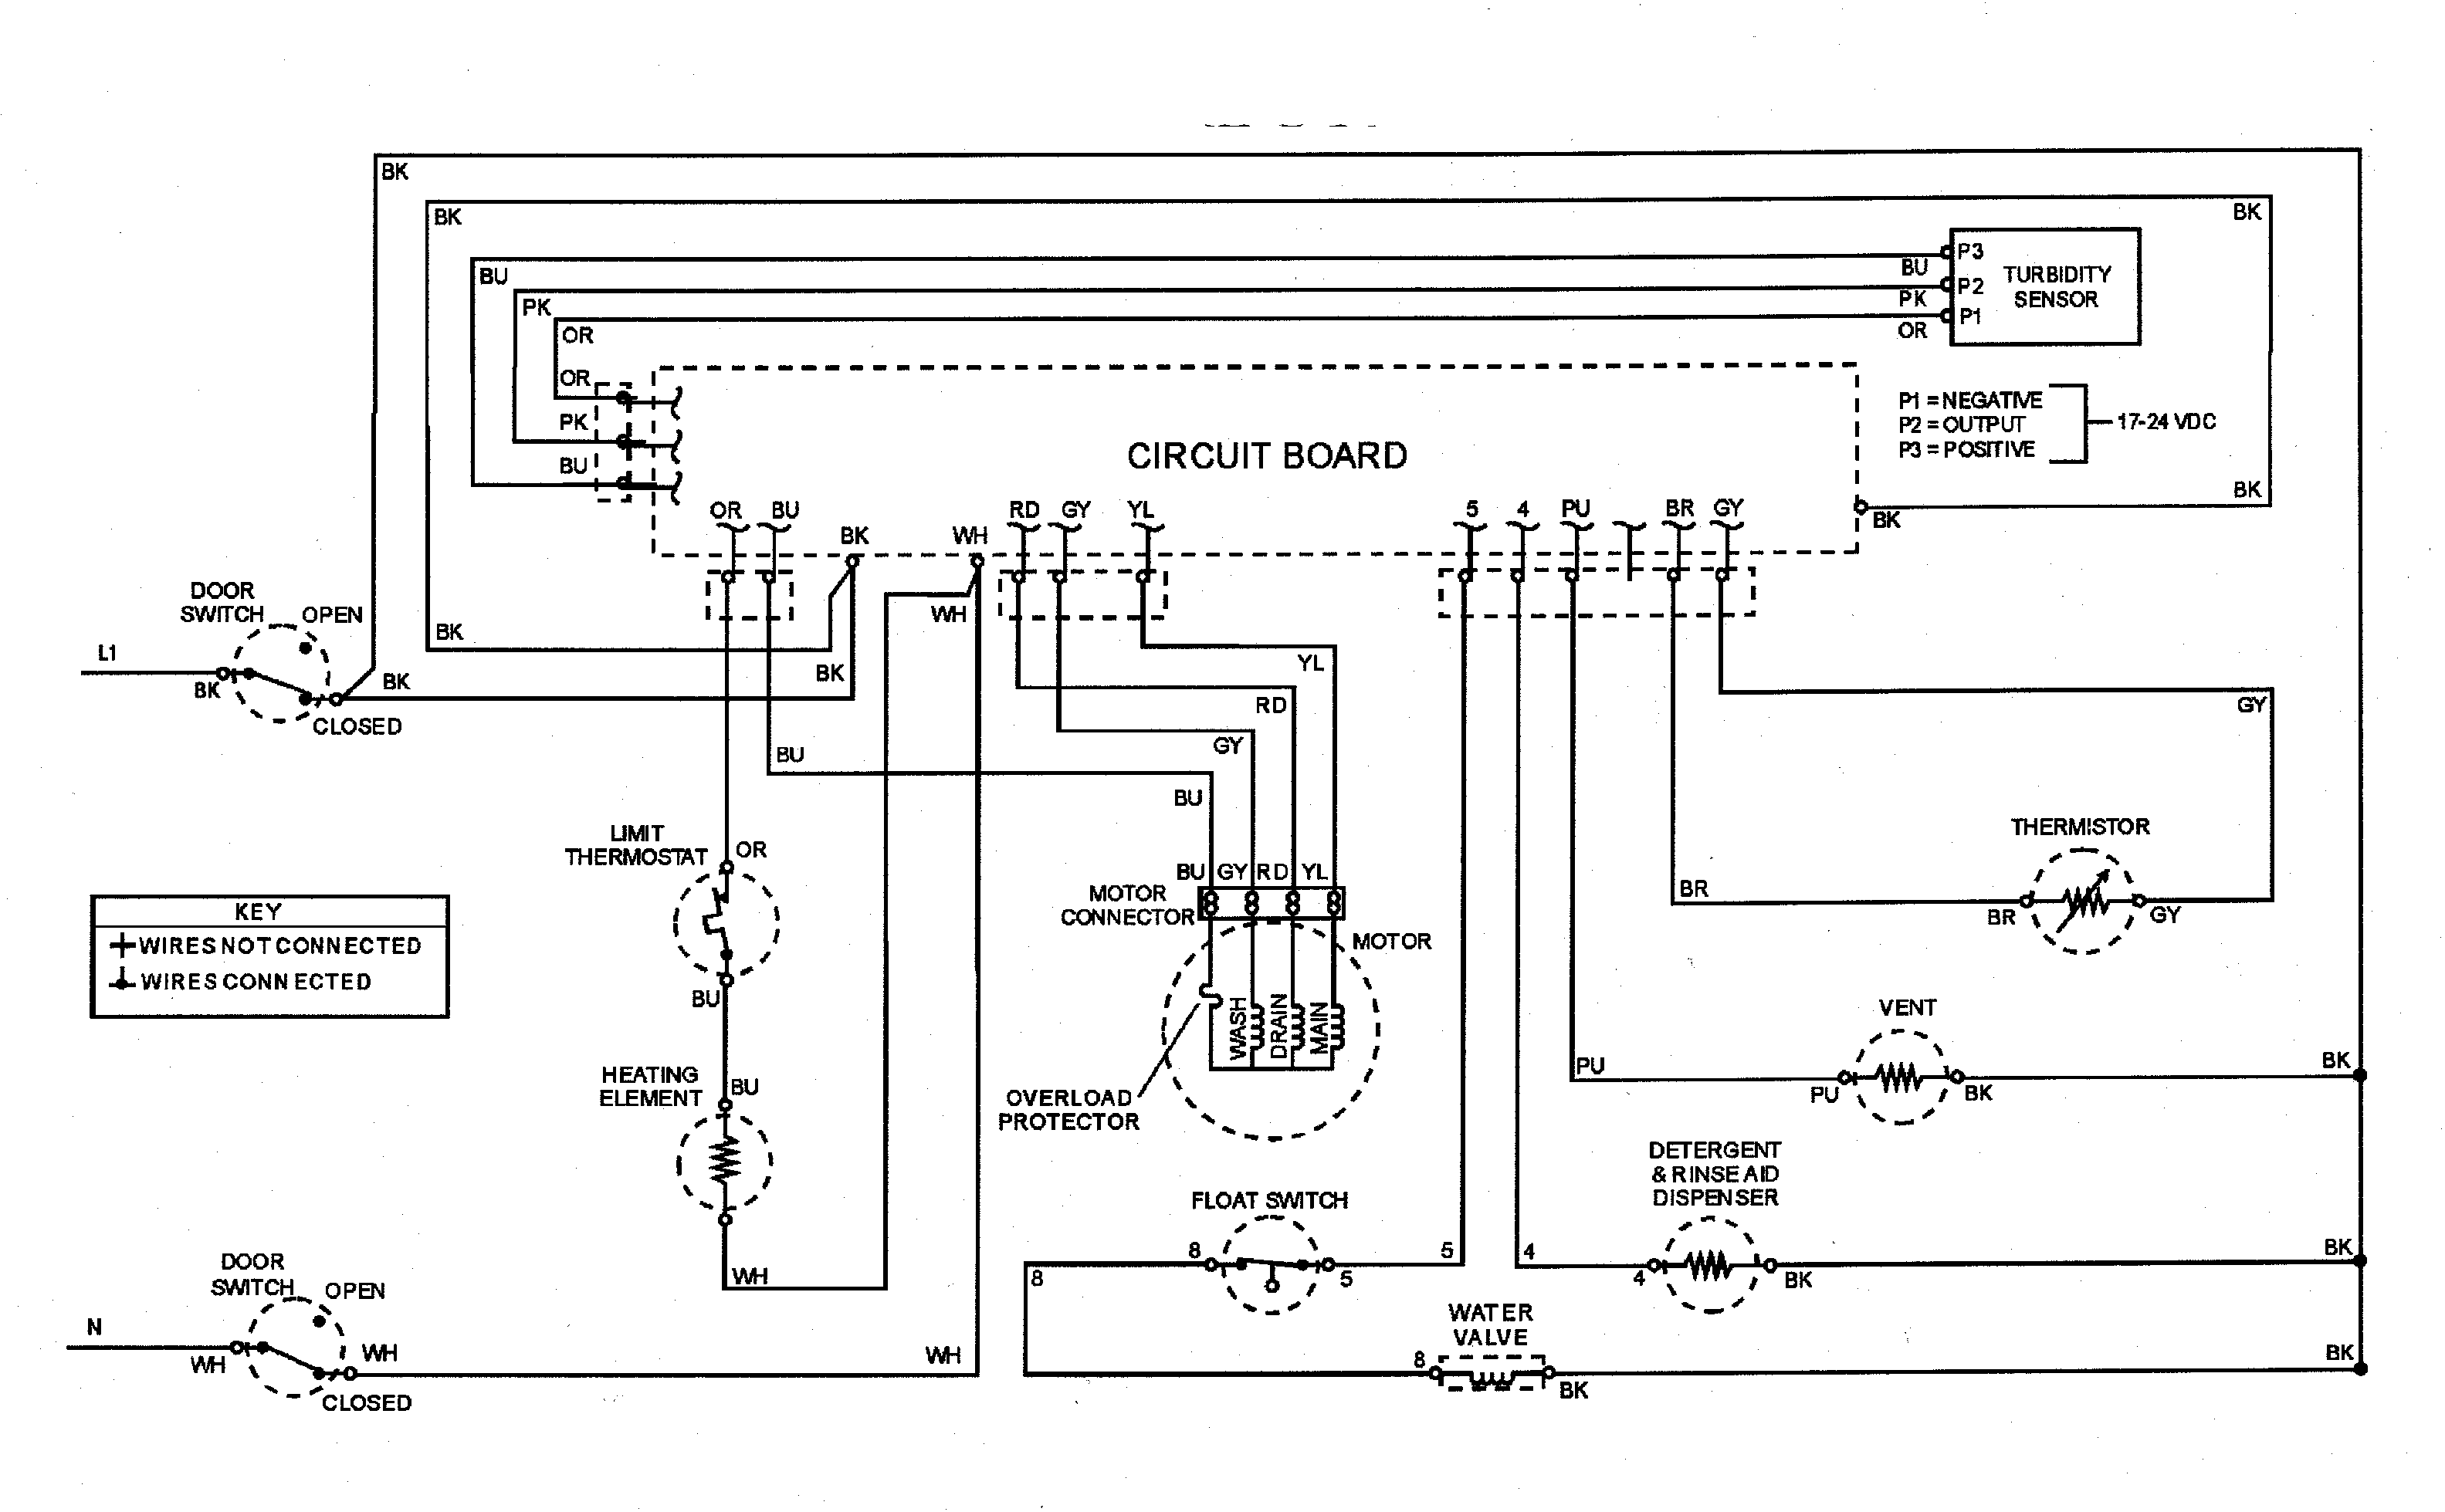 Dishwasher Hard Wiring Diagram, Dishwasher, Get Free Image